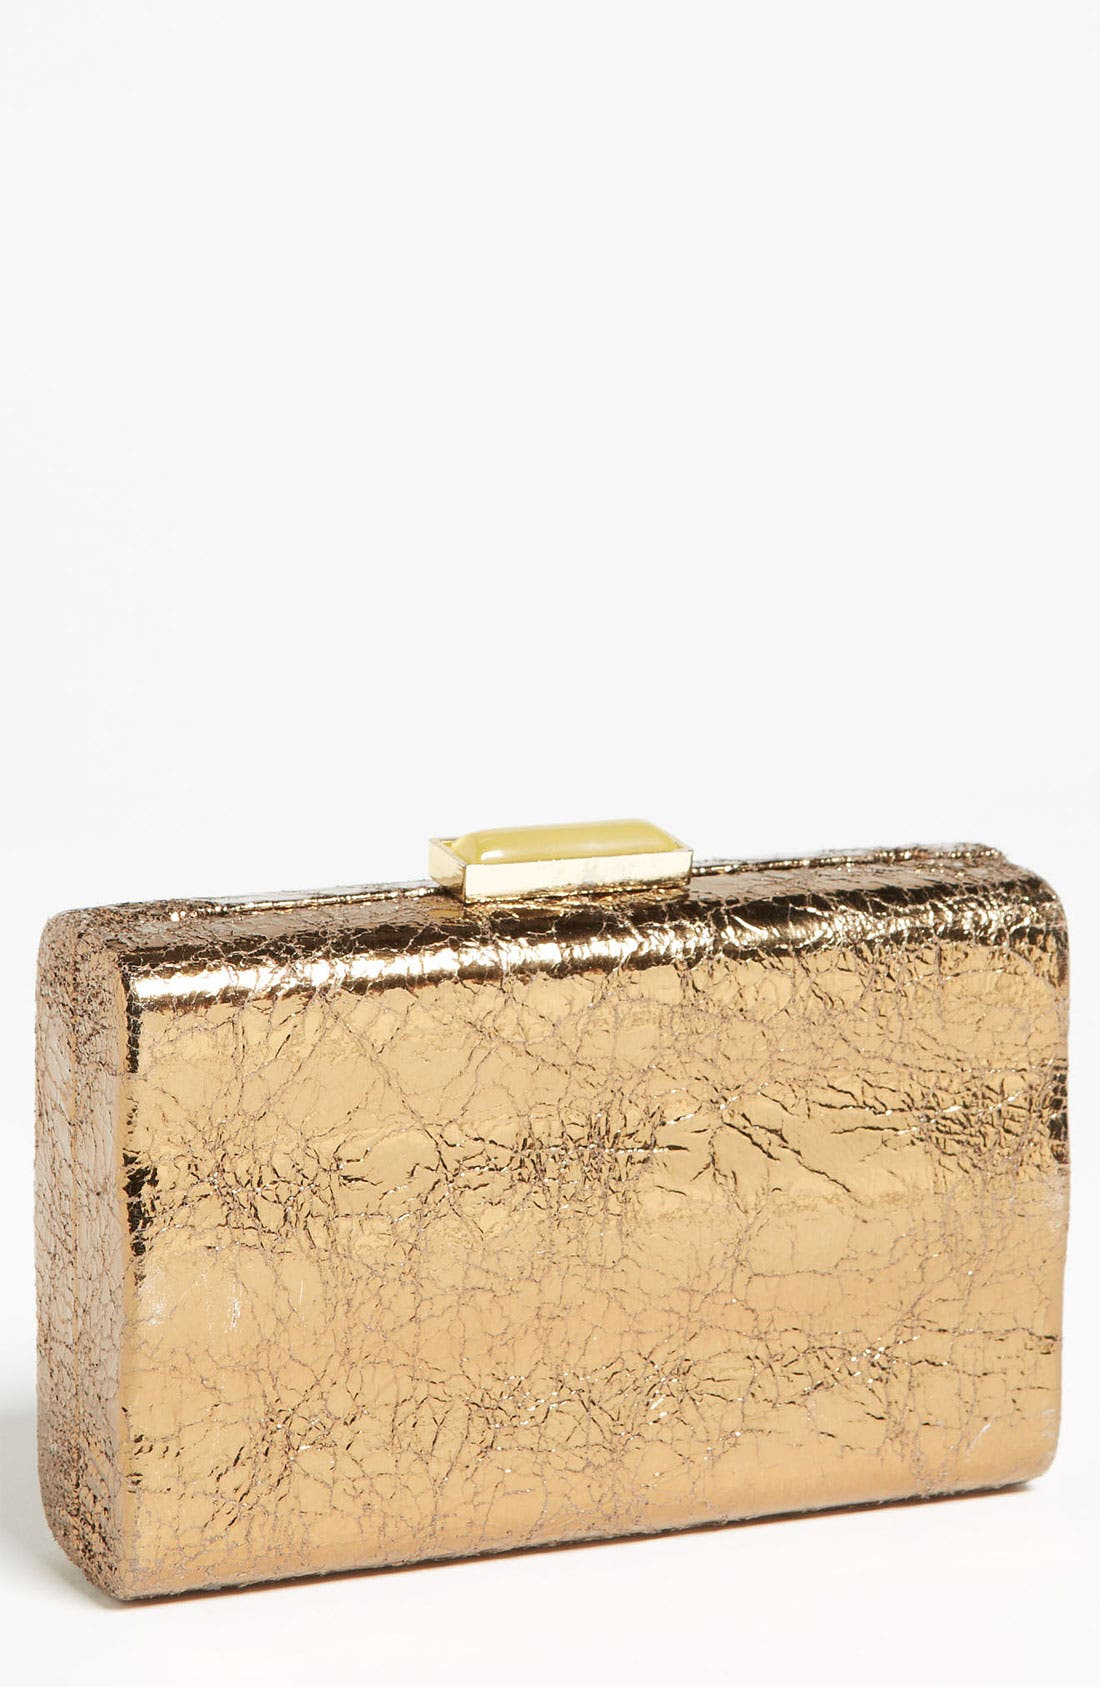 Alternate Image 1 Selected - Expressions NYC 'Metallic Wave' Box Clutch